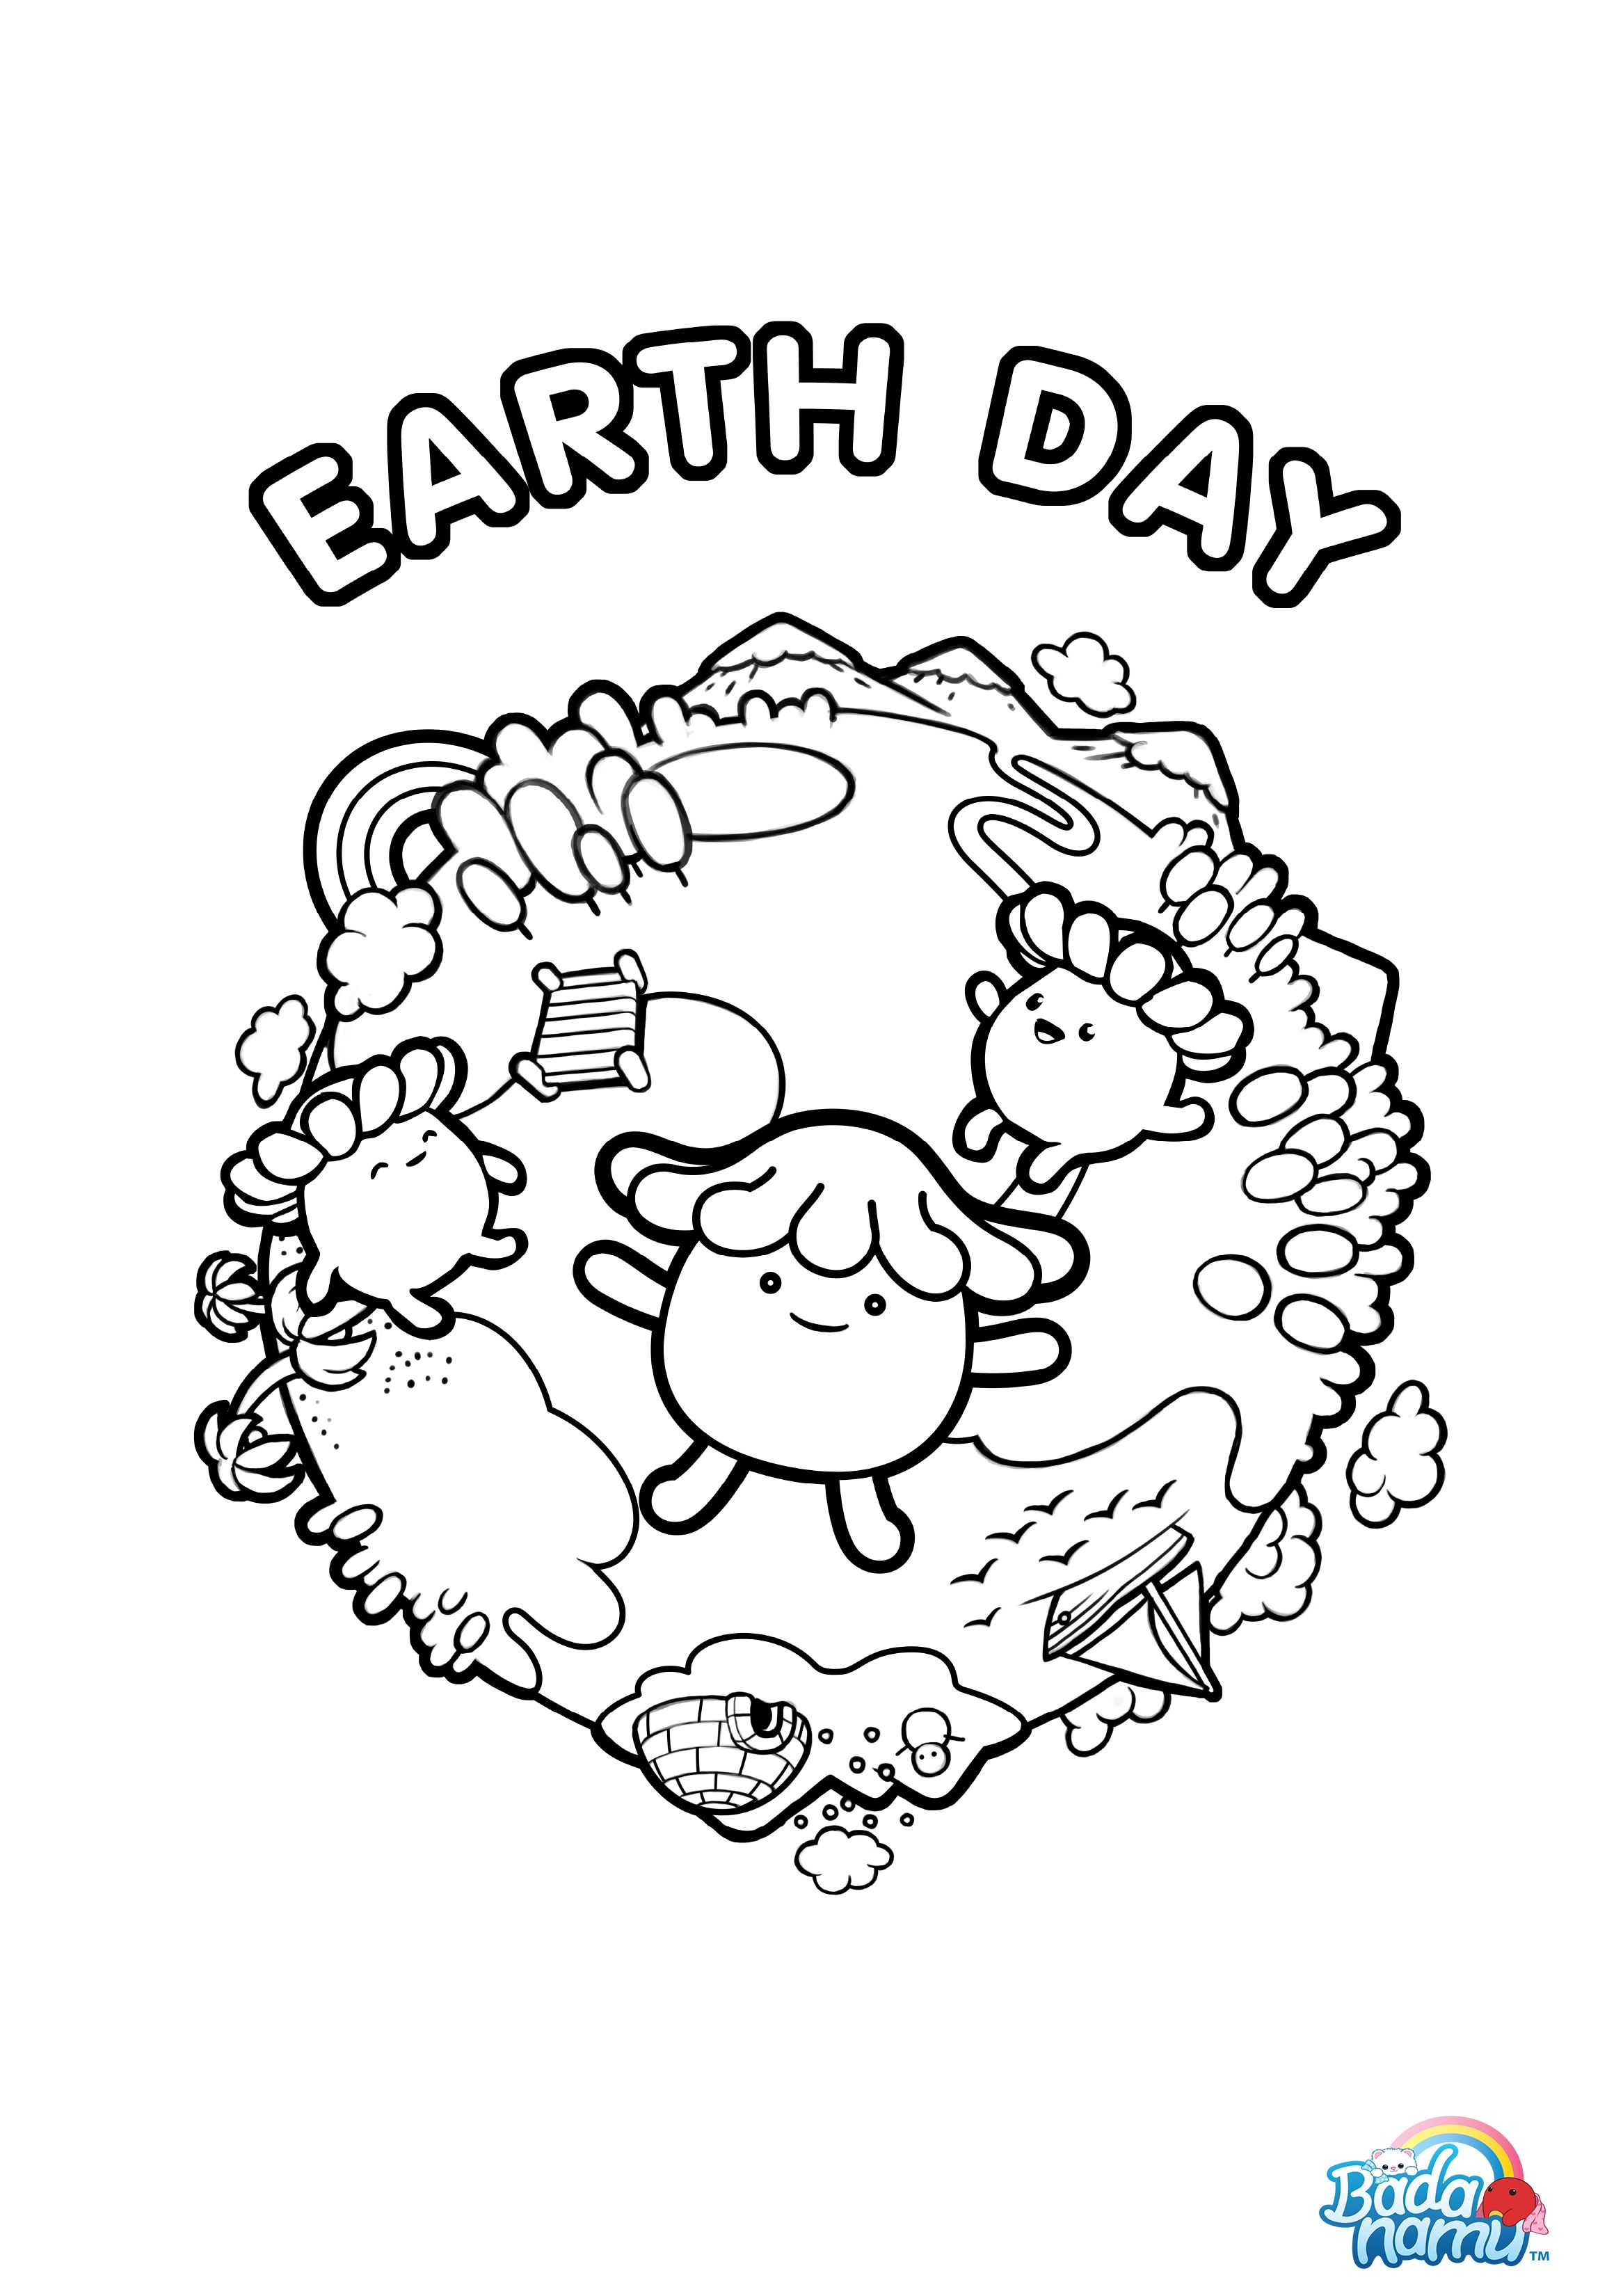 Help our Eccos celebrate Earth Day by coloring this fun